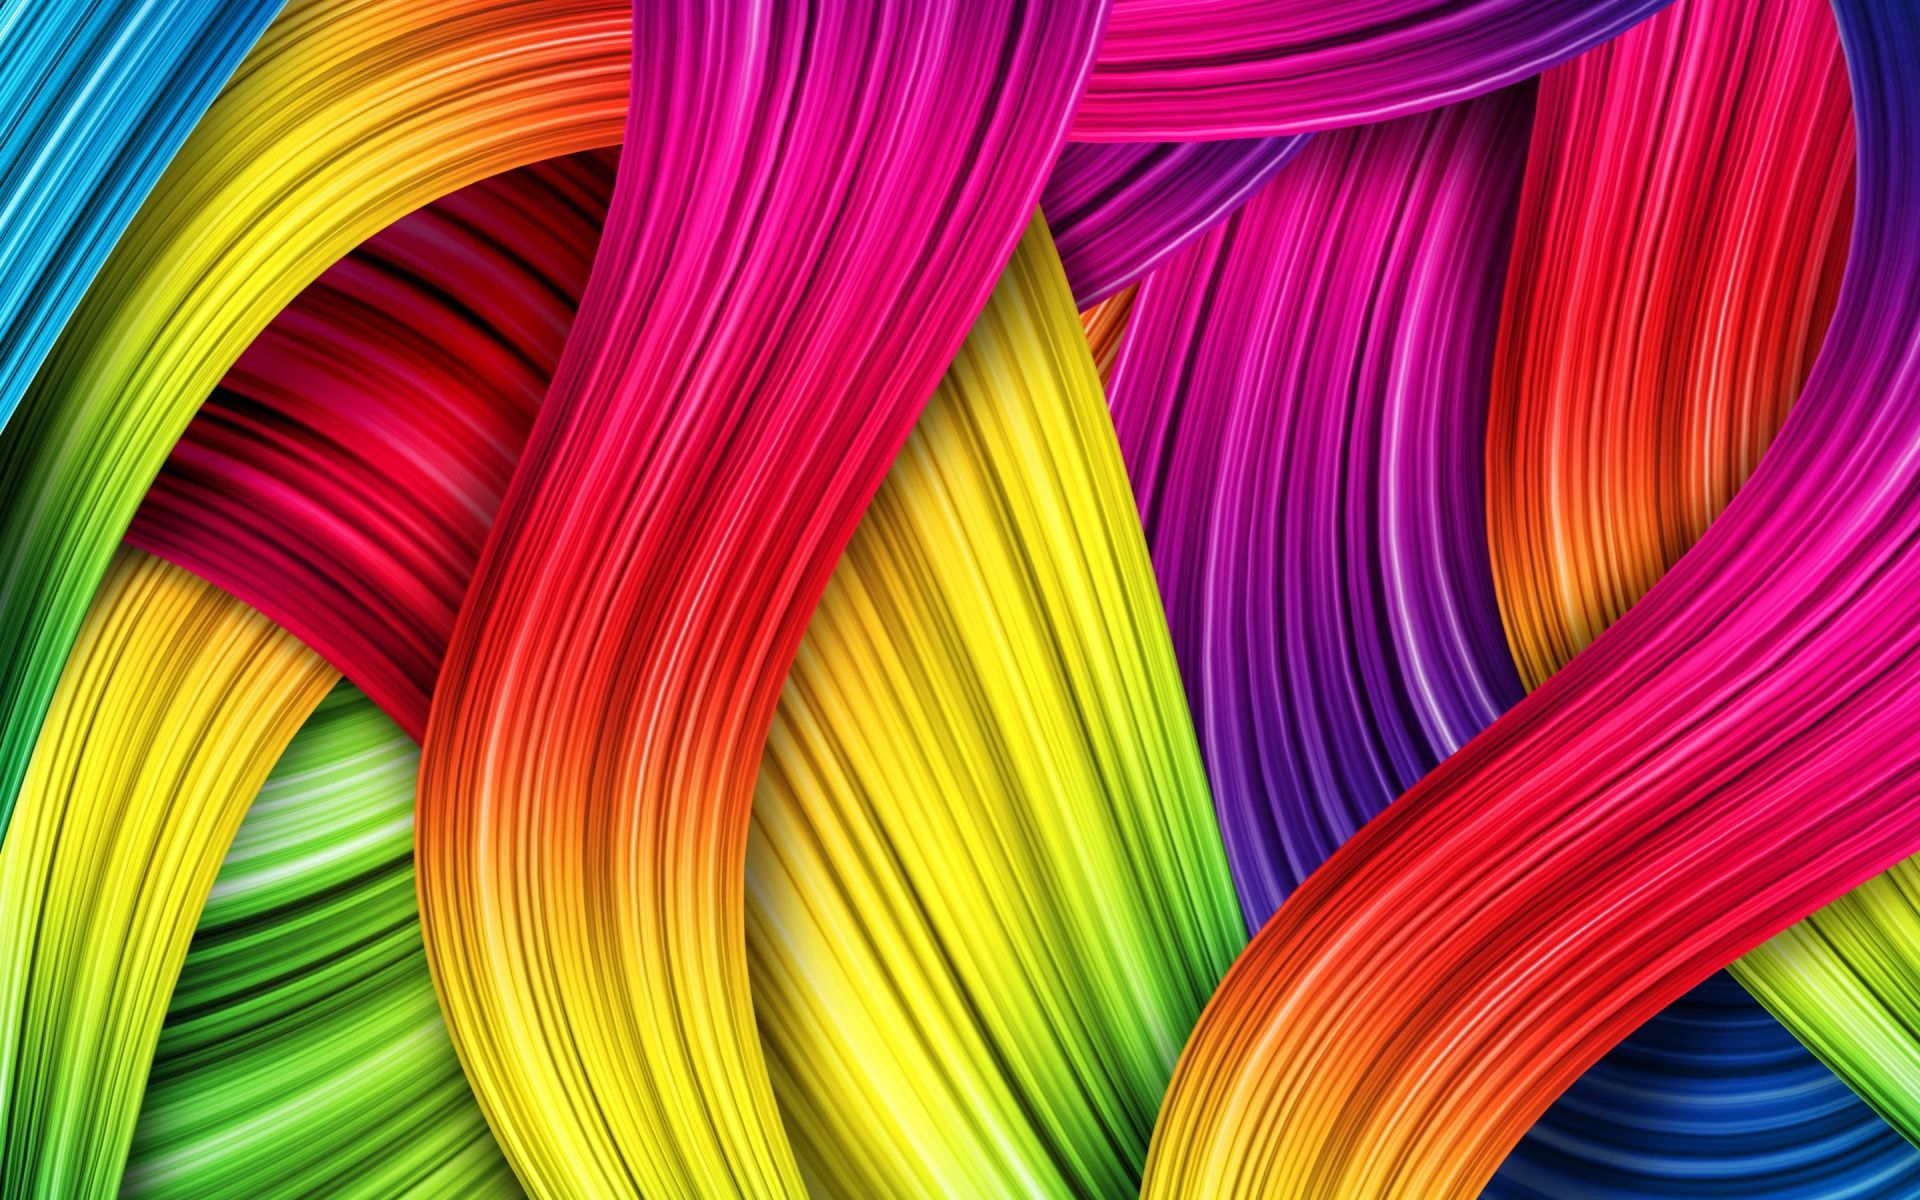 Colorful Cool Abstract Wallpaper Backgrounds 2918